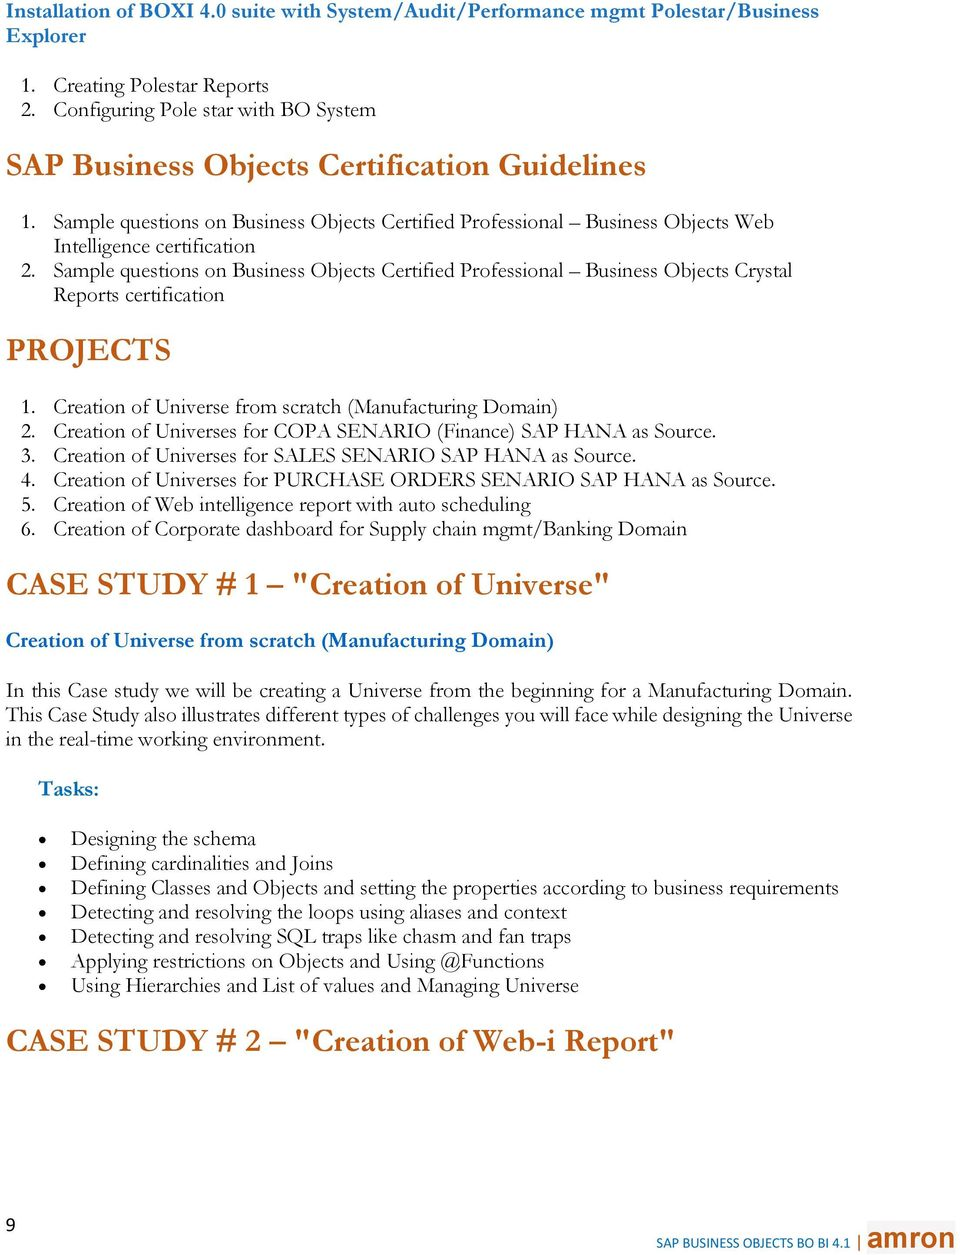 Sample questions on Business Objects Certified Professional Business Objects Crystal Reports certification PROJECTS 1. Creation of Universe from scratch (Manufacturing Domain) 2.